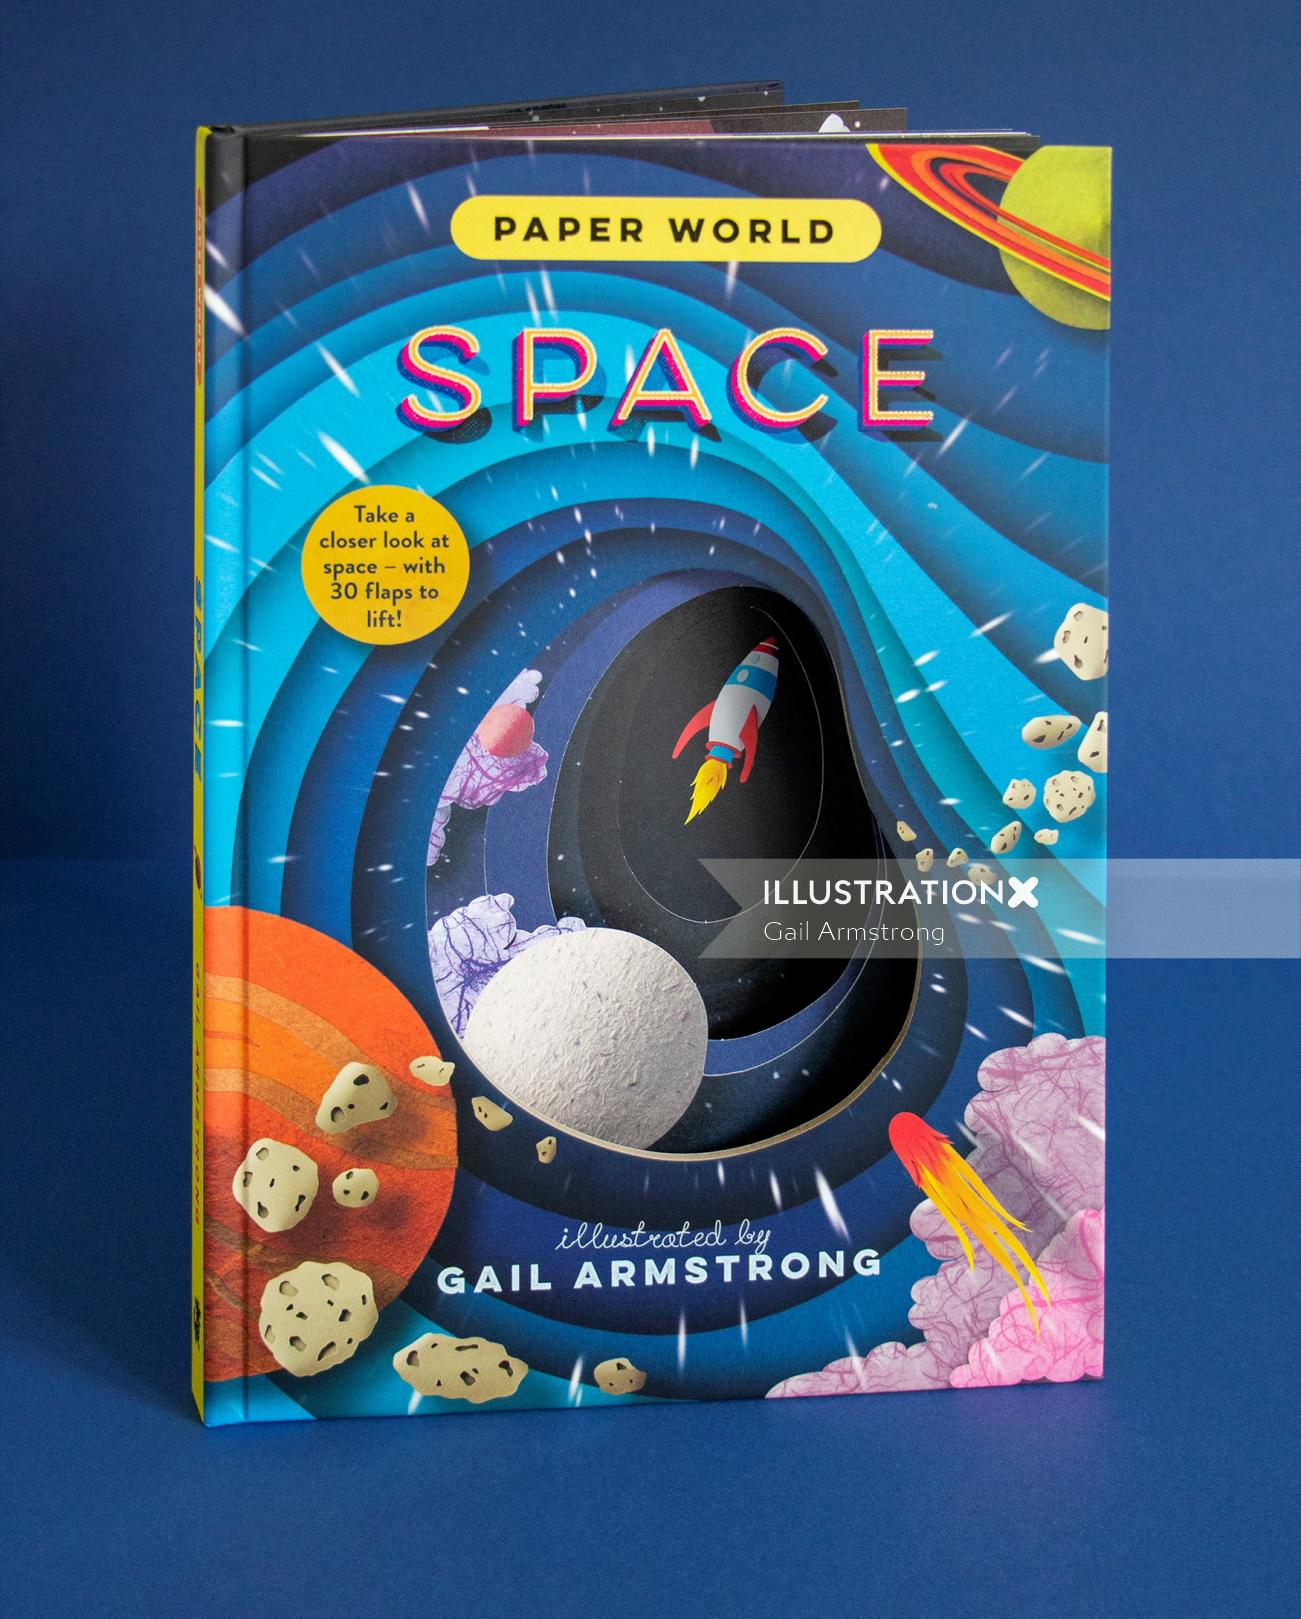 Rockets, planets, astronauts and outer space